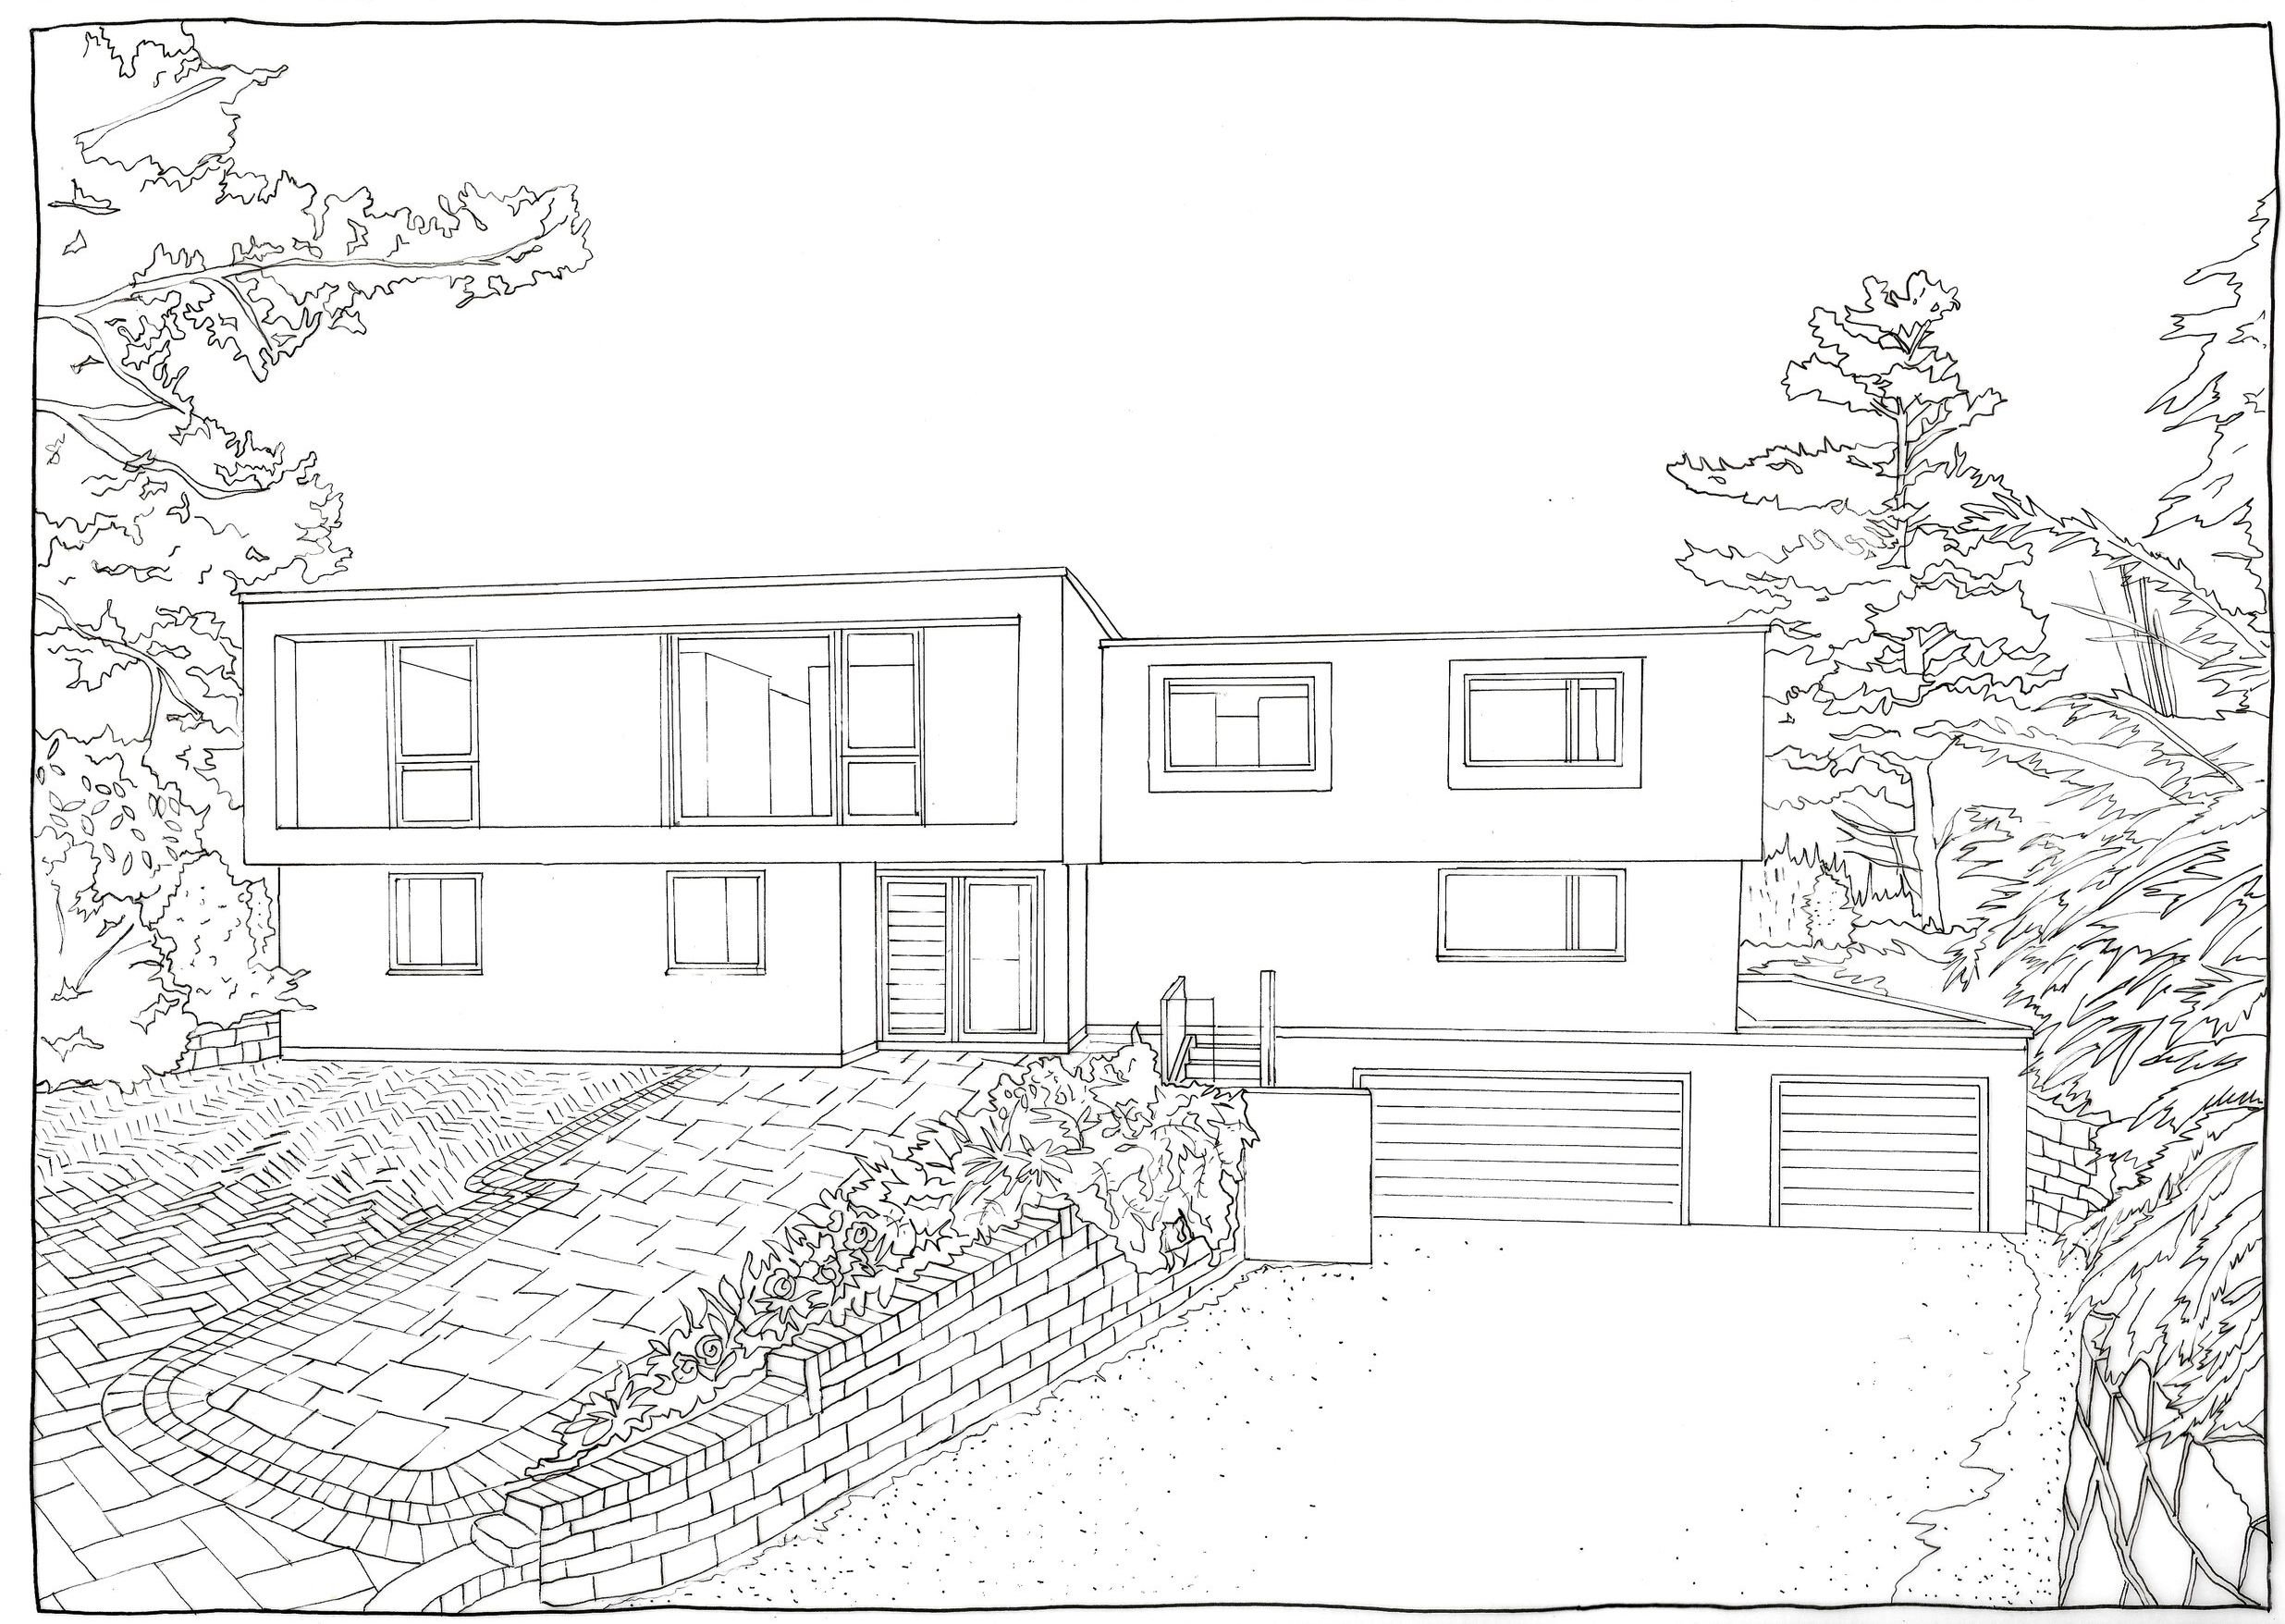 FRONT ELEVATION - ORIGINAL PEN DRAWING